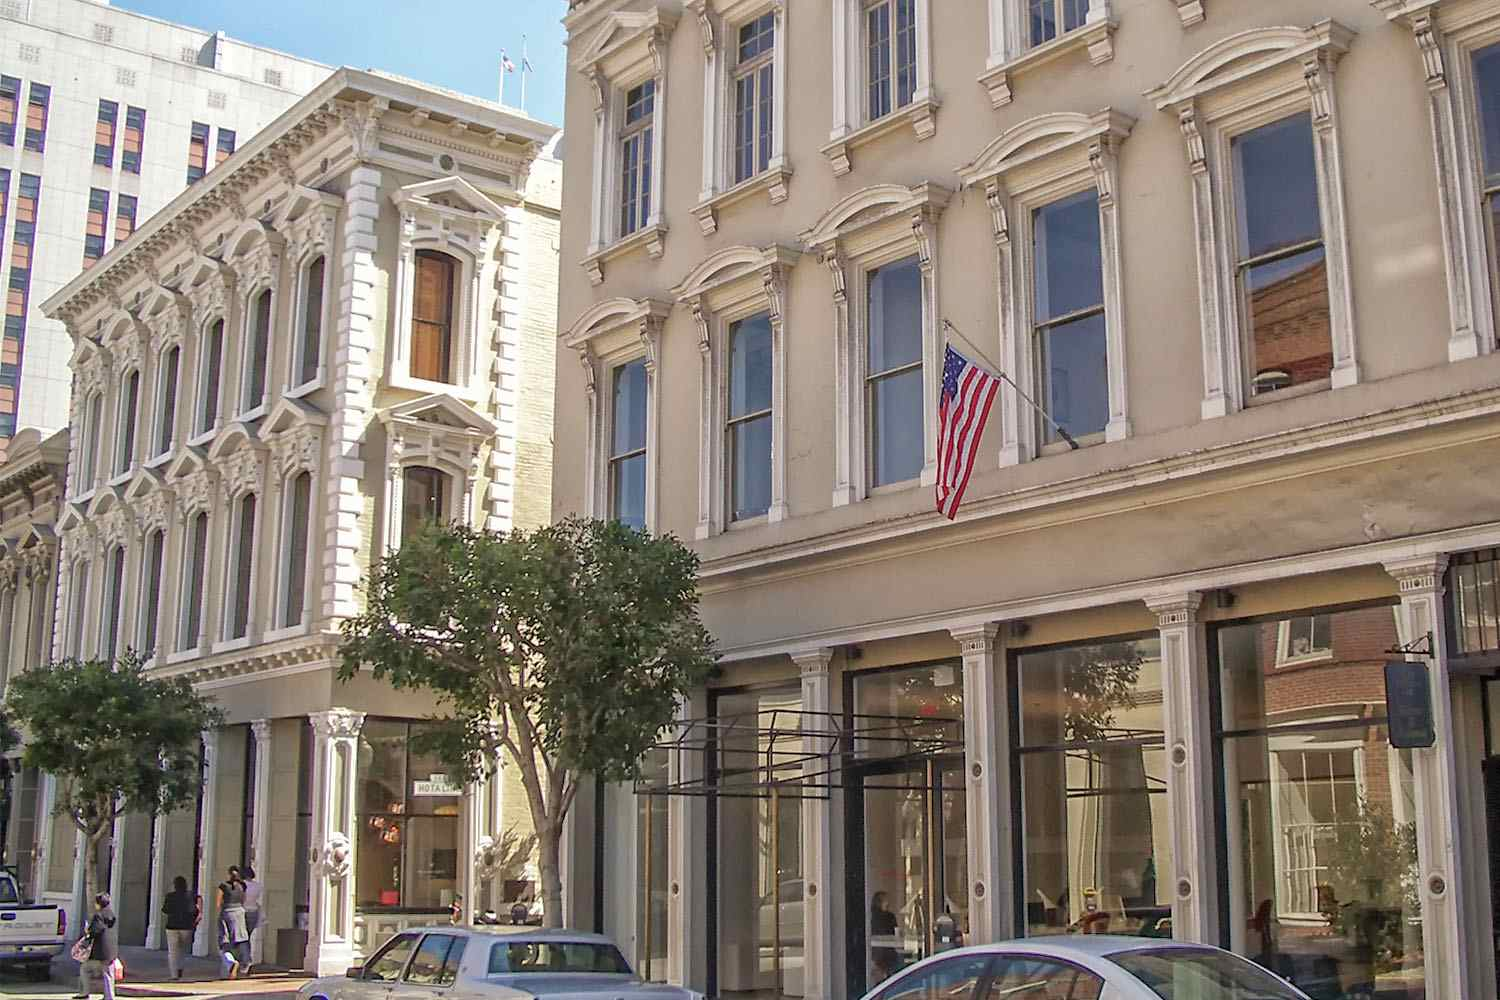 Hotaling Place in San Francisco